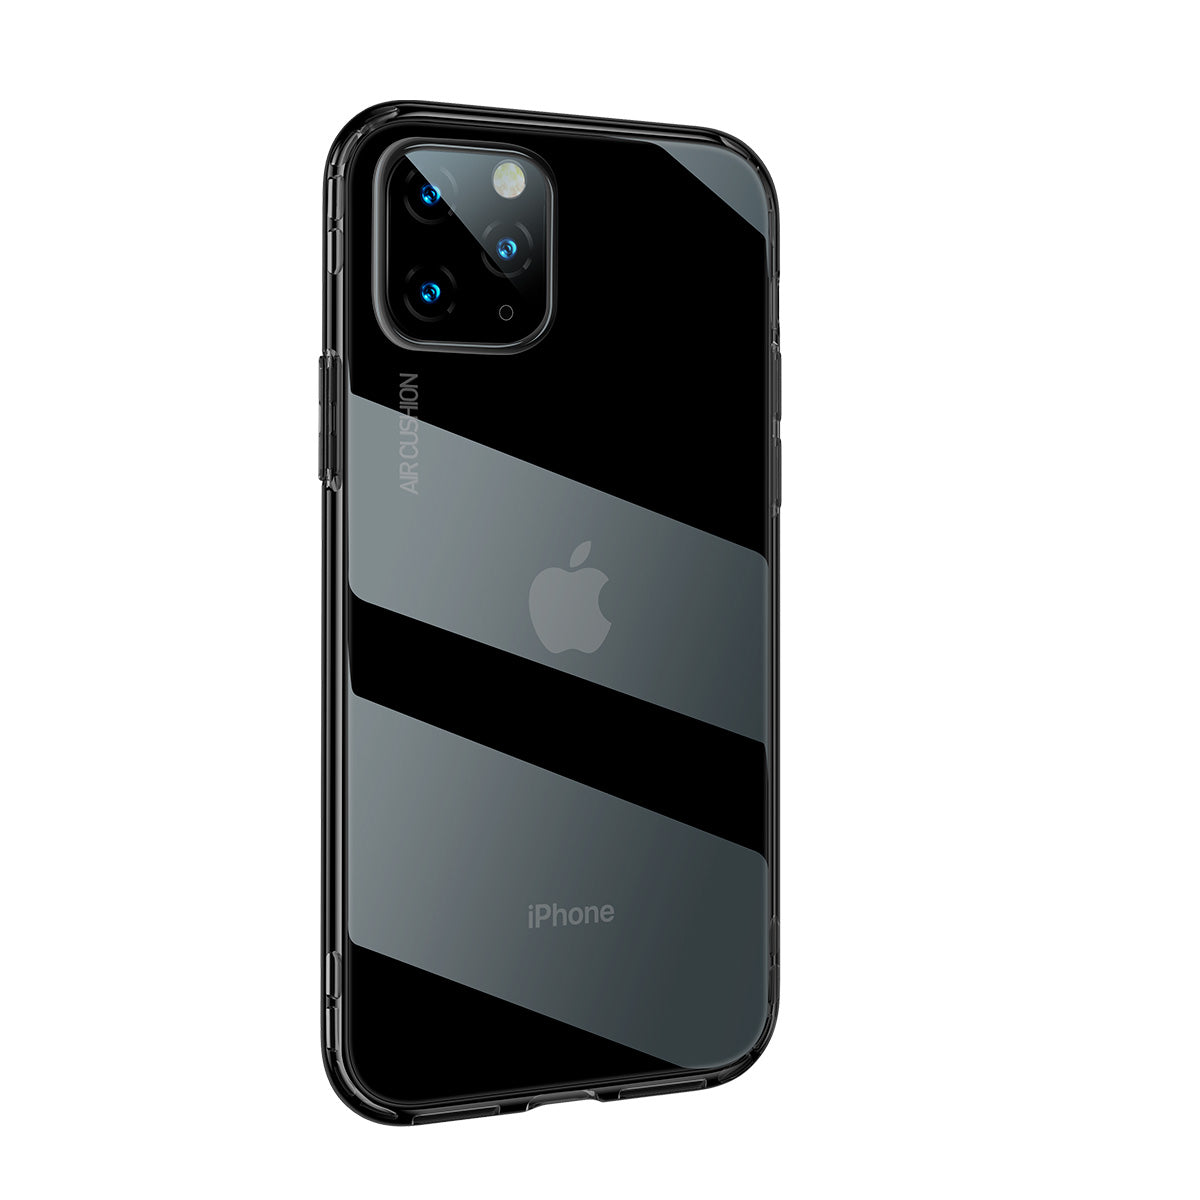 Baseus_Safety_Airbags_Case_iPhone_11_Pro_Max_Case_Transparent_Black_Side_S78YS6XW3D5V.jpg